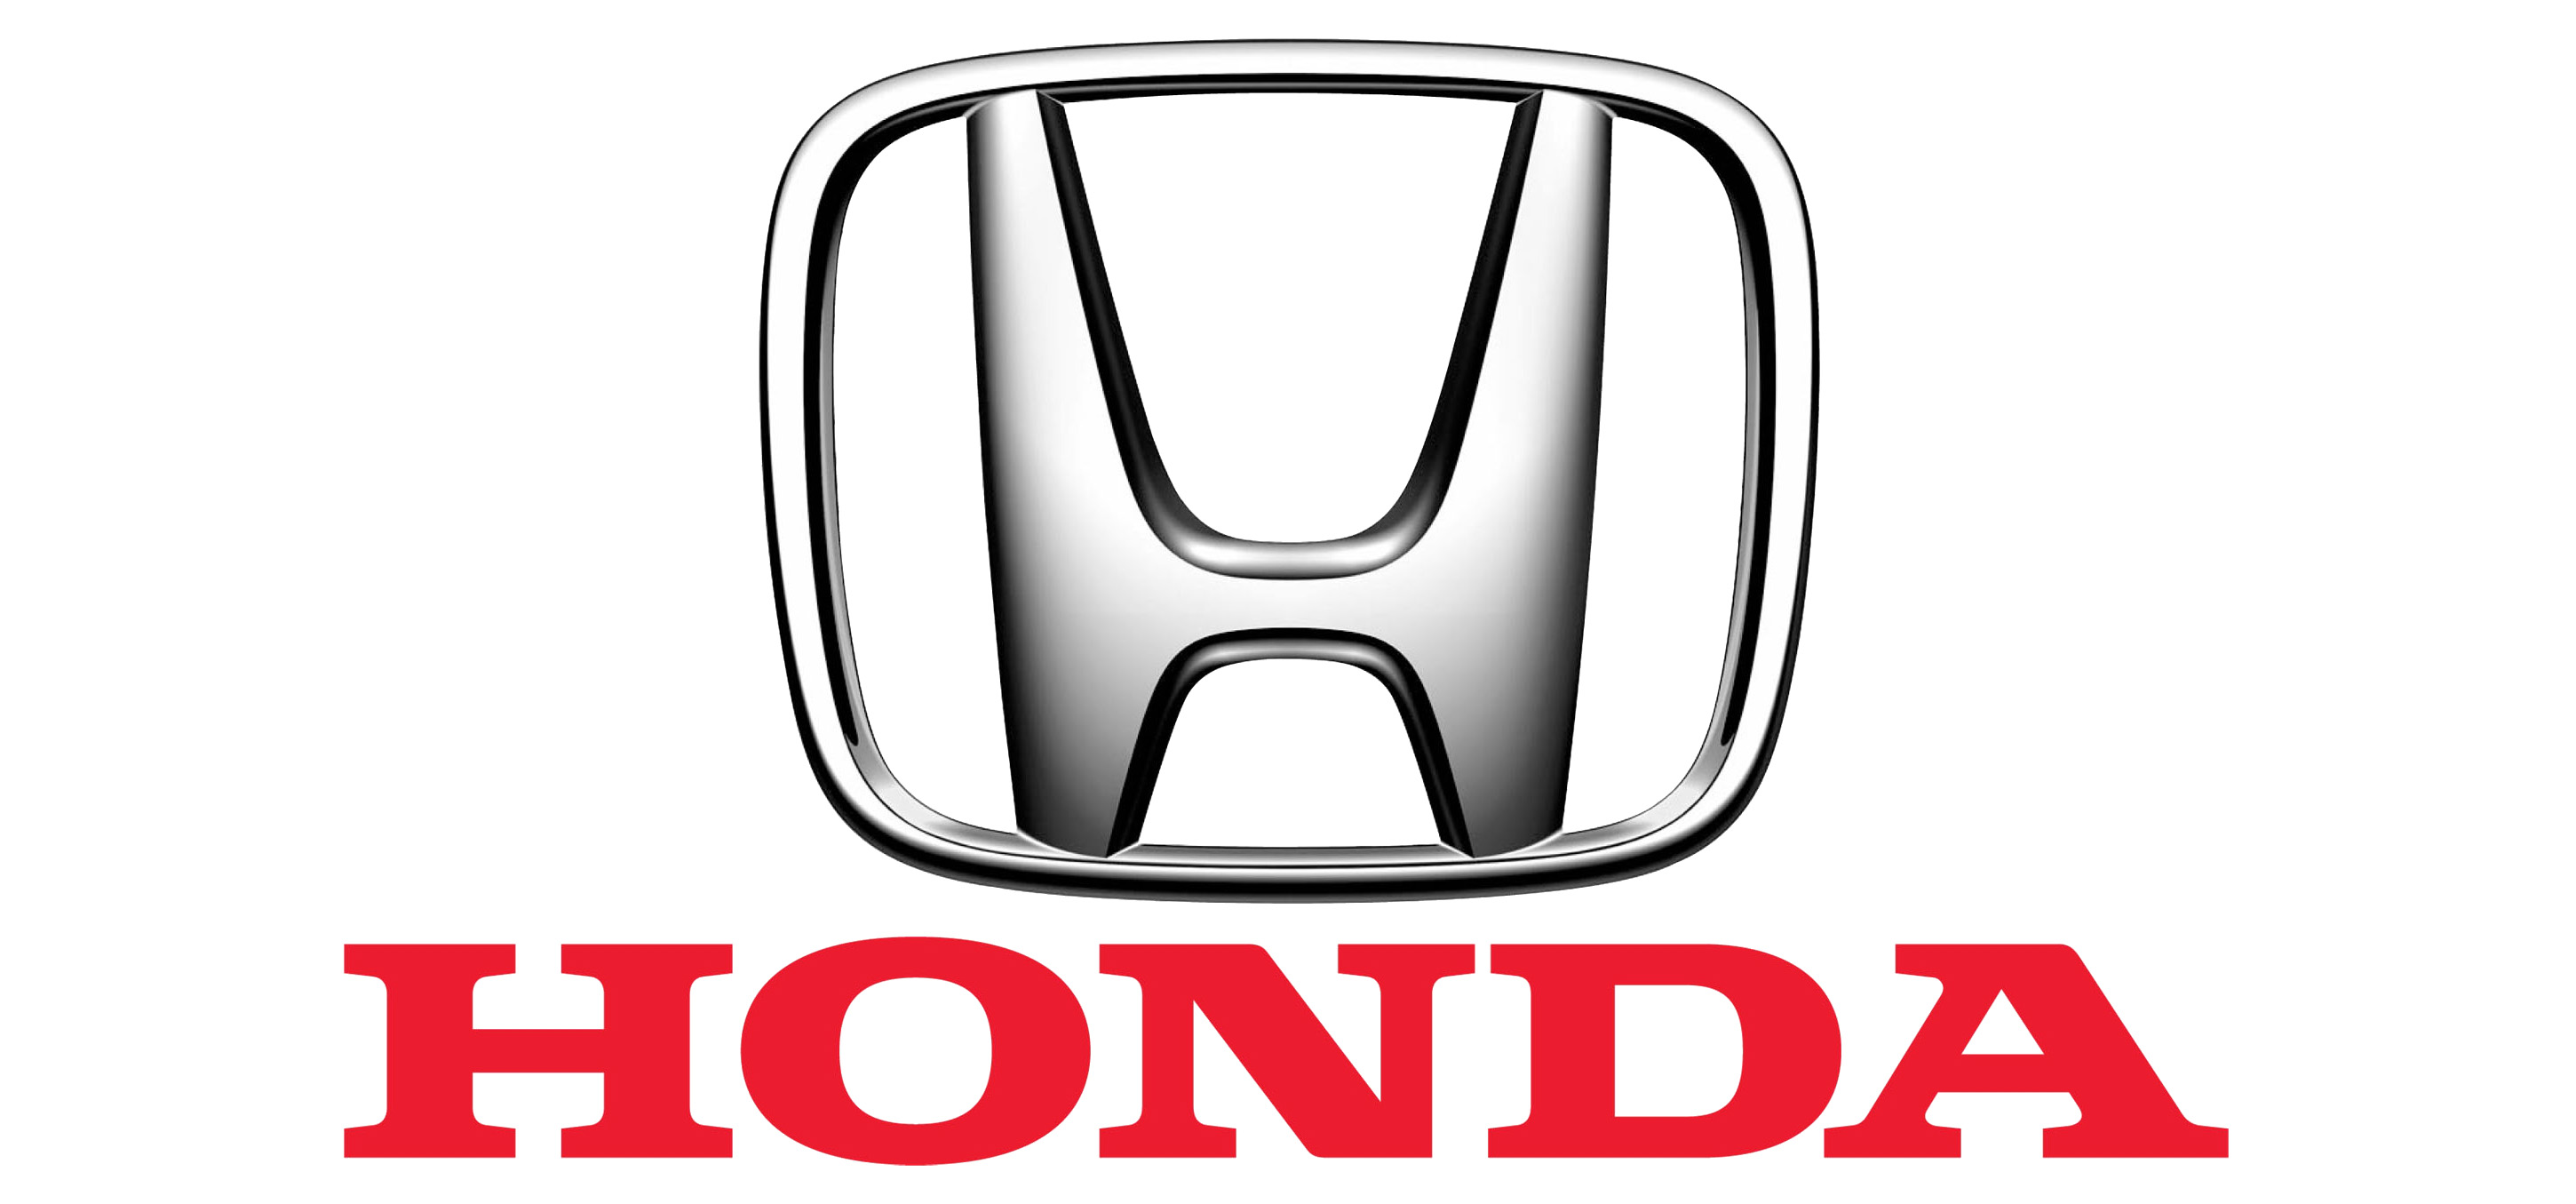 Japanese Car Brands World Cars Brands